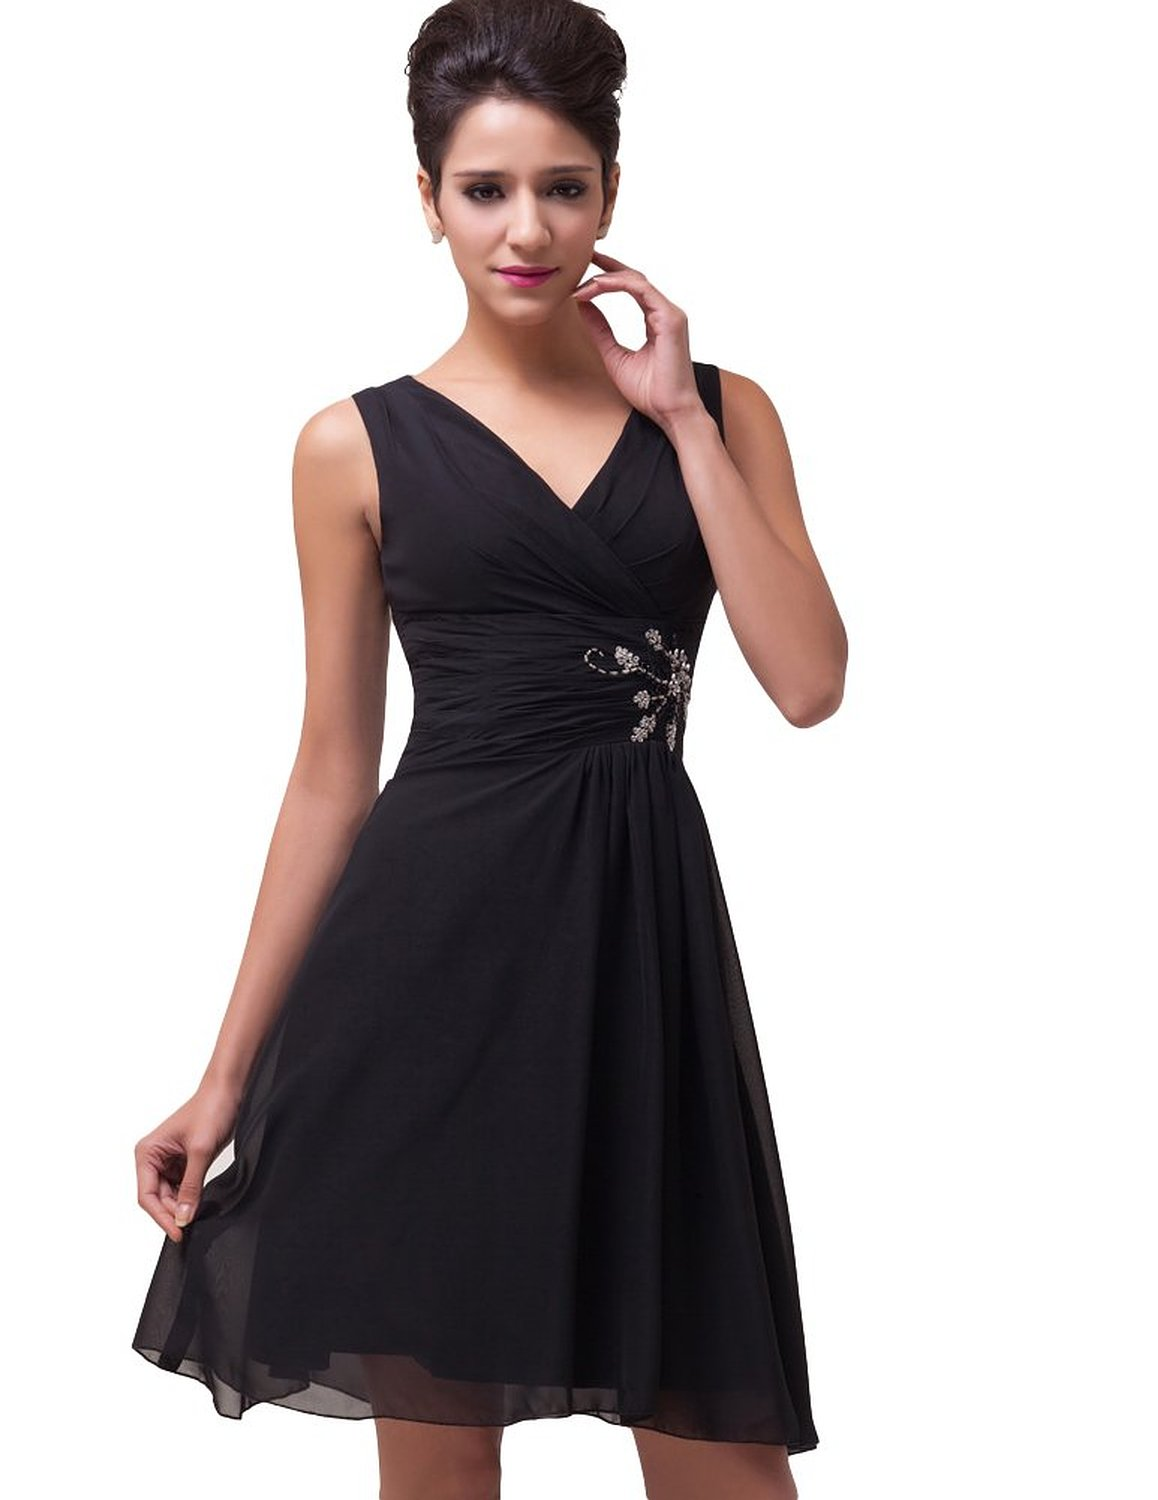 Megan Black Chiffon Cocktail Dress